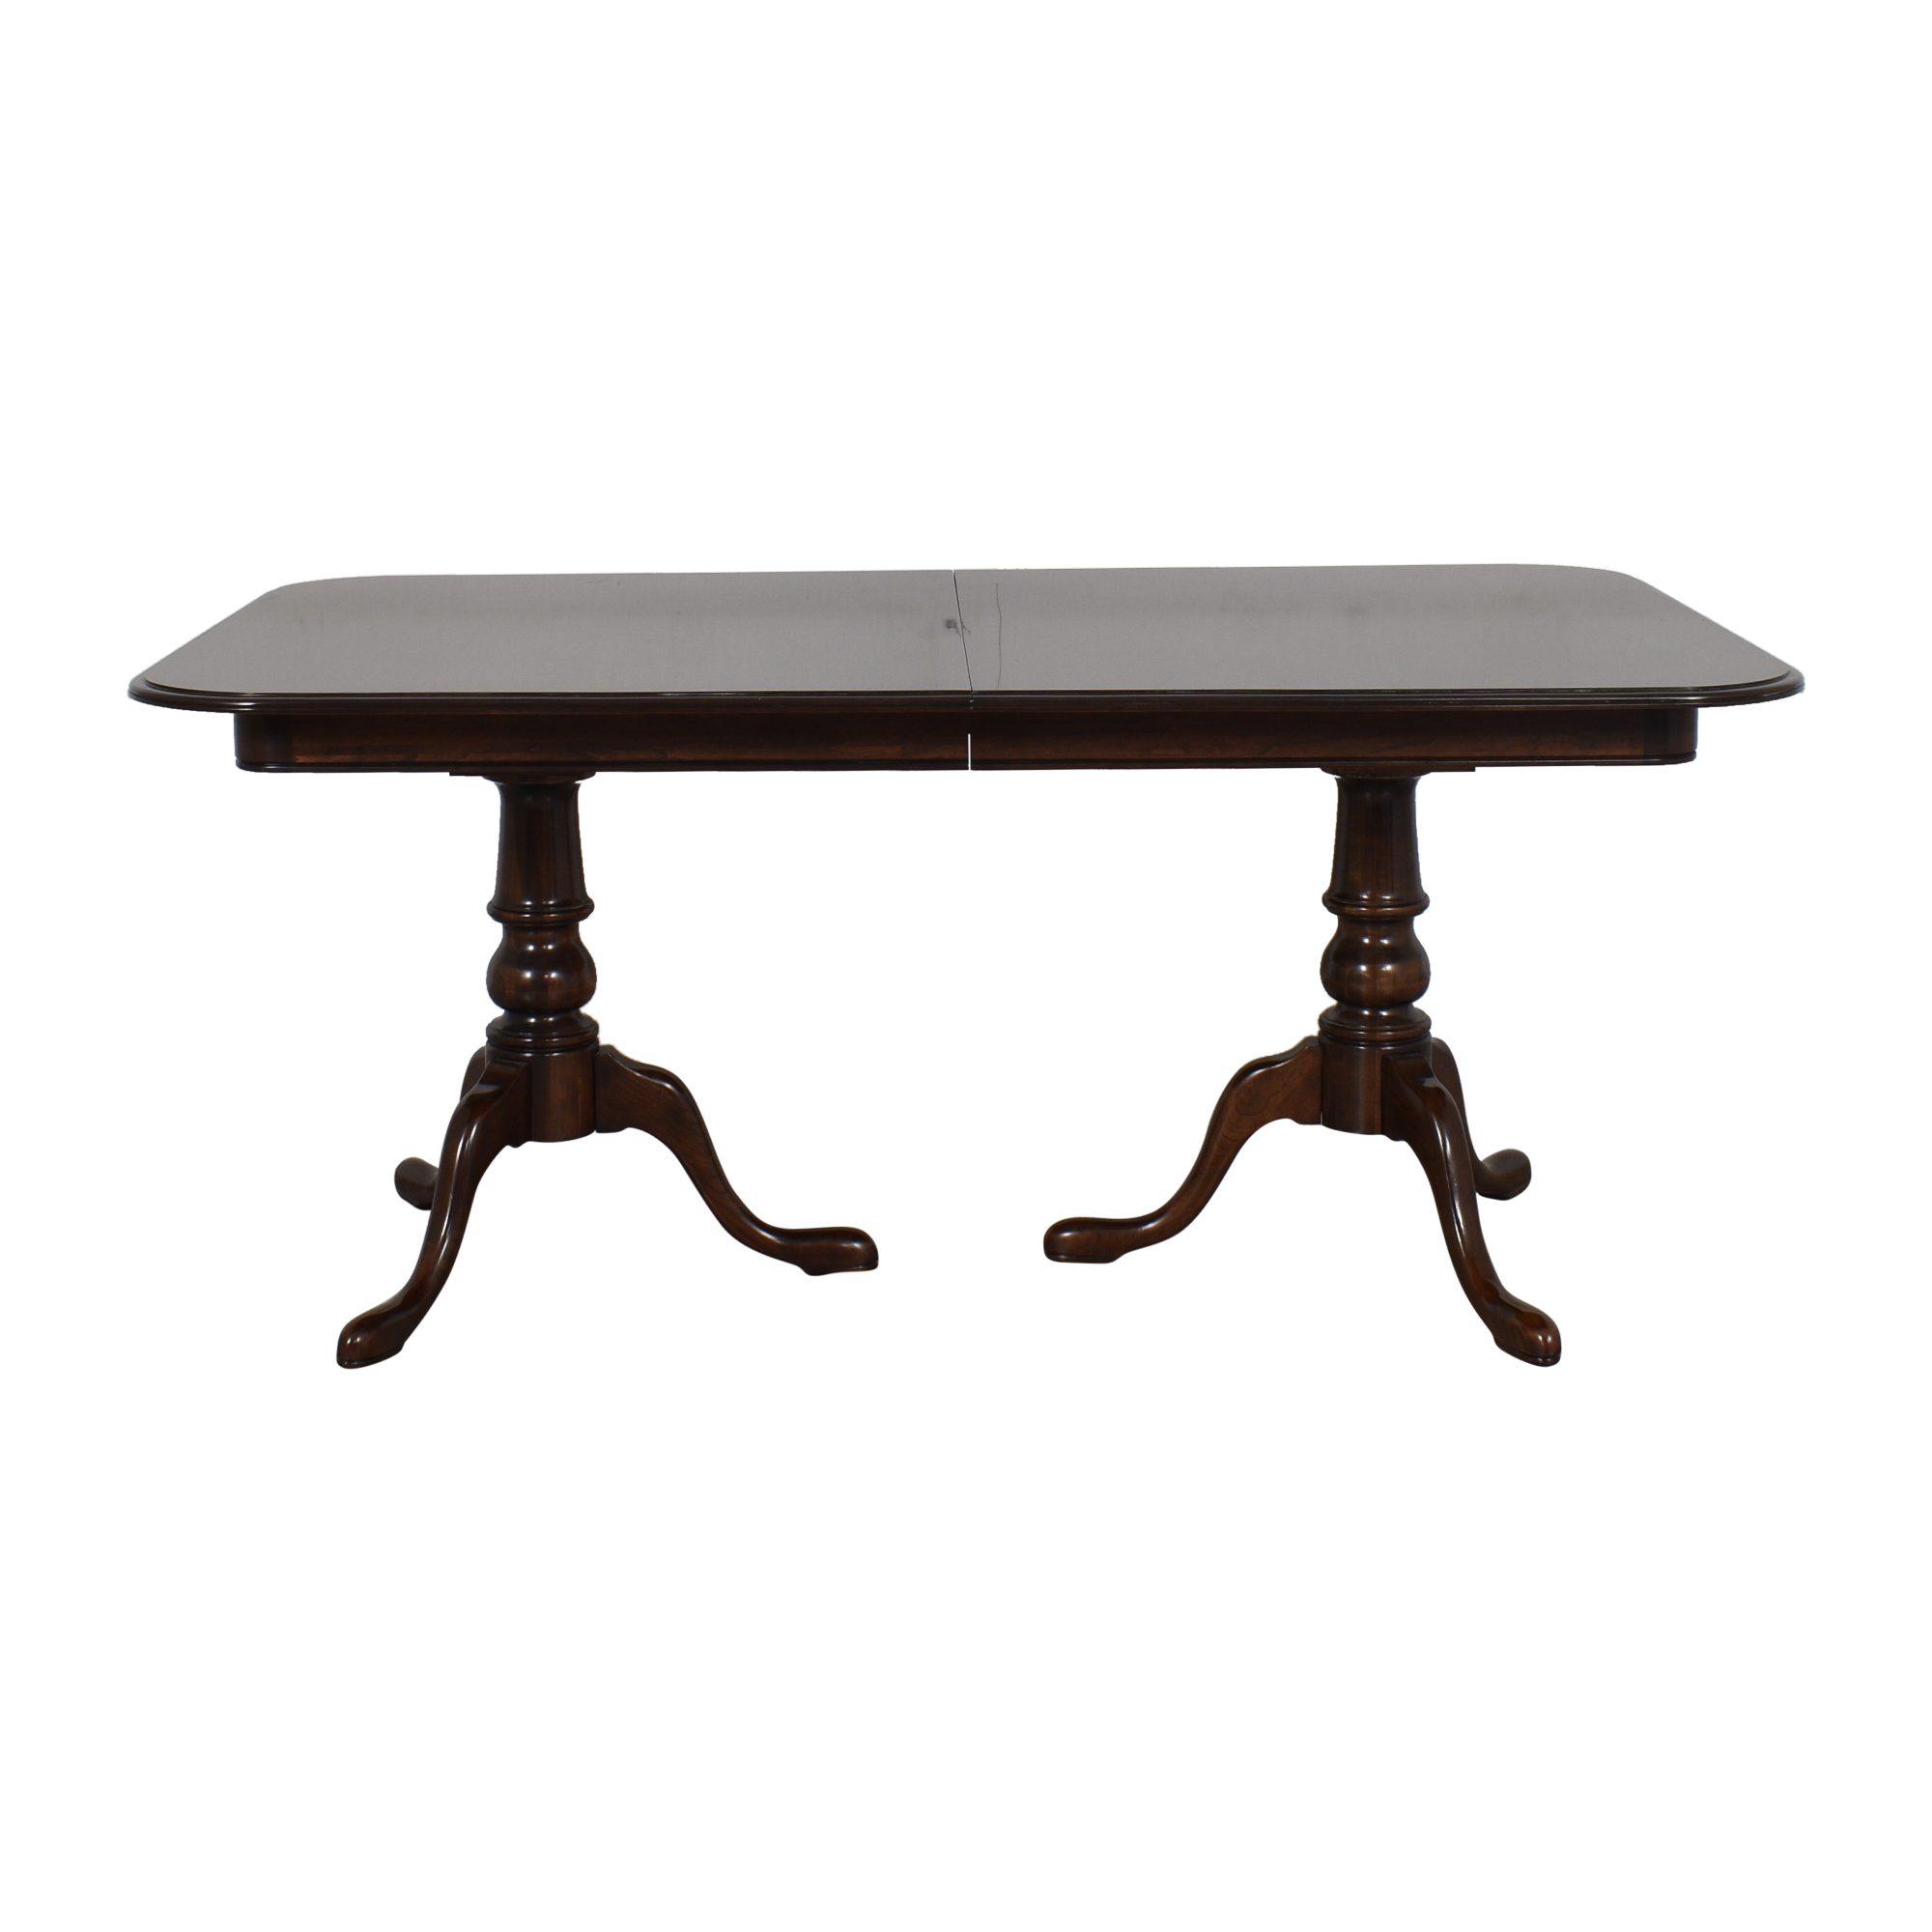 buy Ethan Allen Double Pedestal Dining Table Ethan Allen Dinner Tables